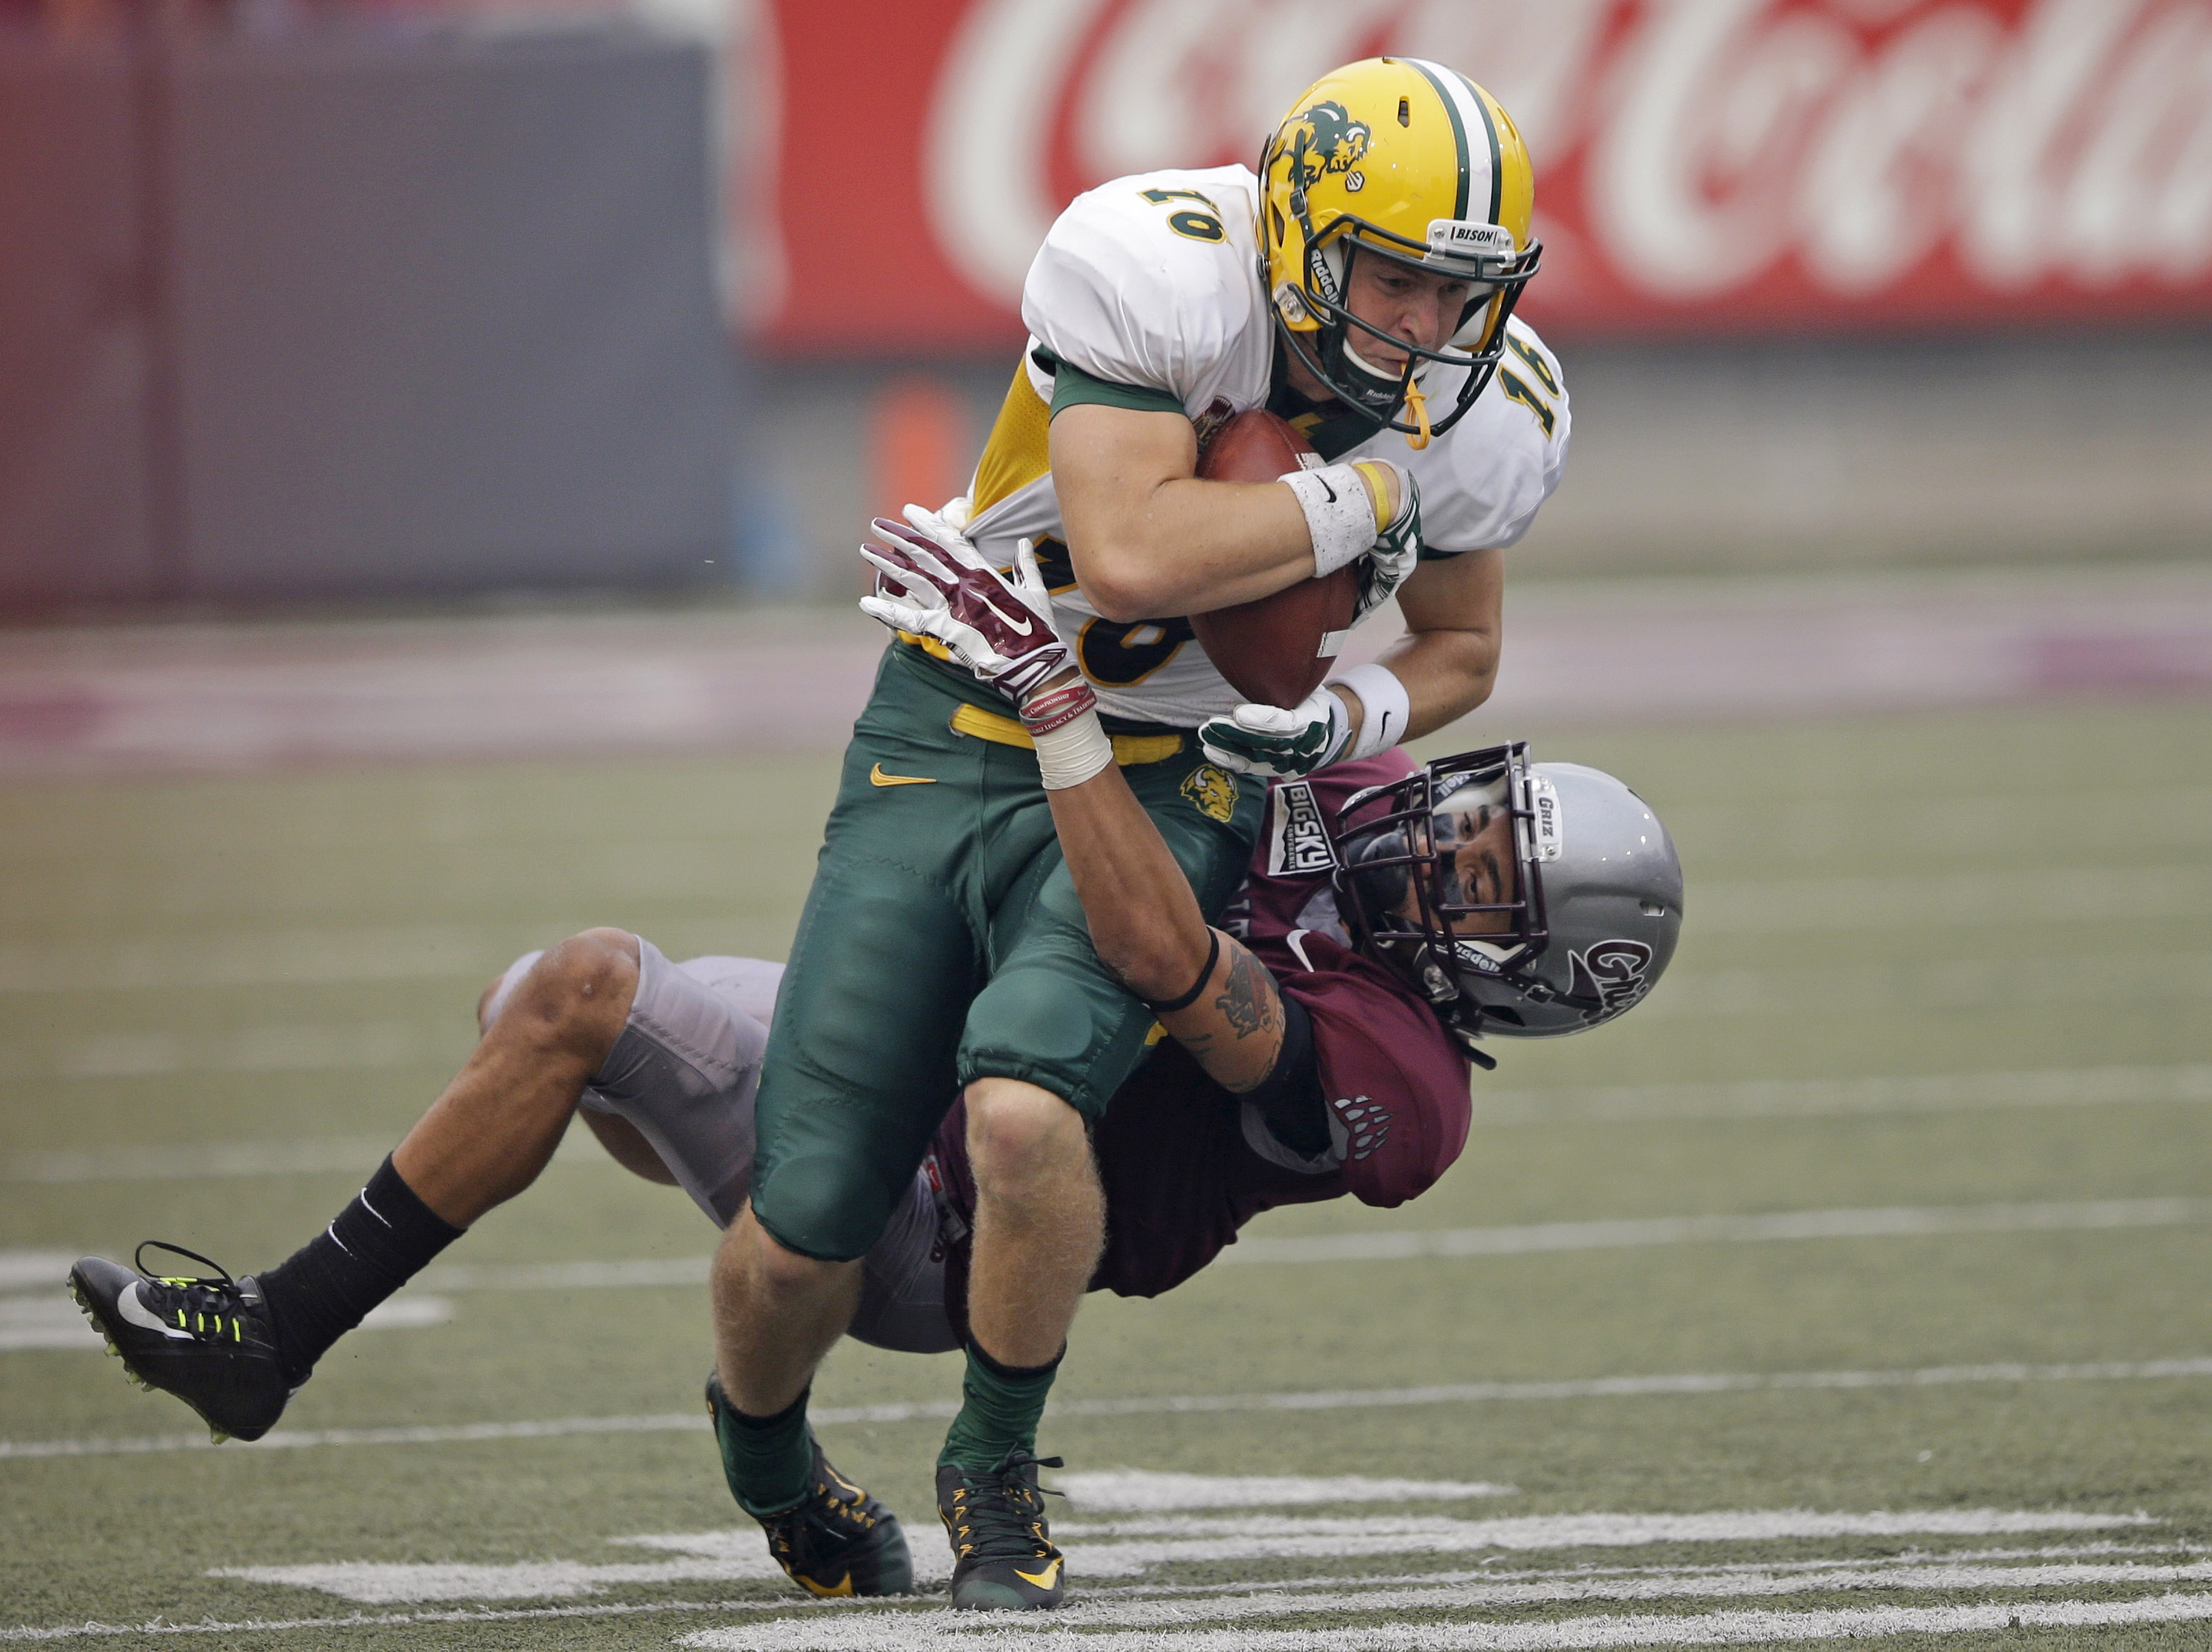 FILE - In this Aug. 29, 2015, file photo, North Dakota State wide receiver RJ Urzendowski (16) is tackled by Montana cornerback JR Nelson (18) during an NCAA college football game in Missoula, Mont. Montana rallied to win the game 38-35 on the final play